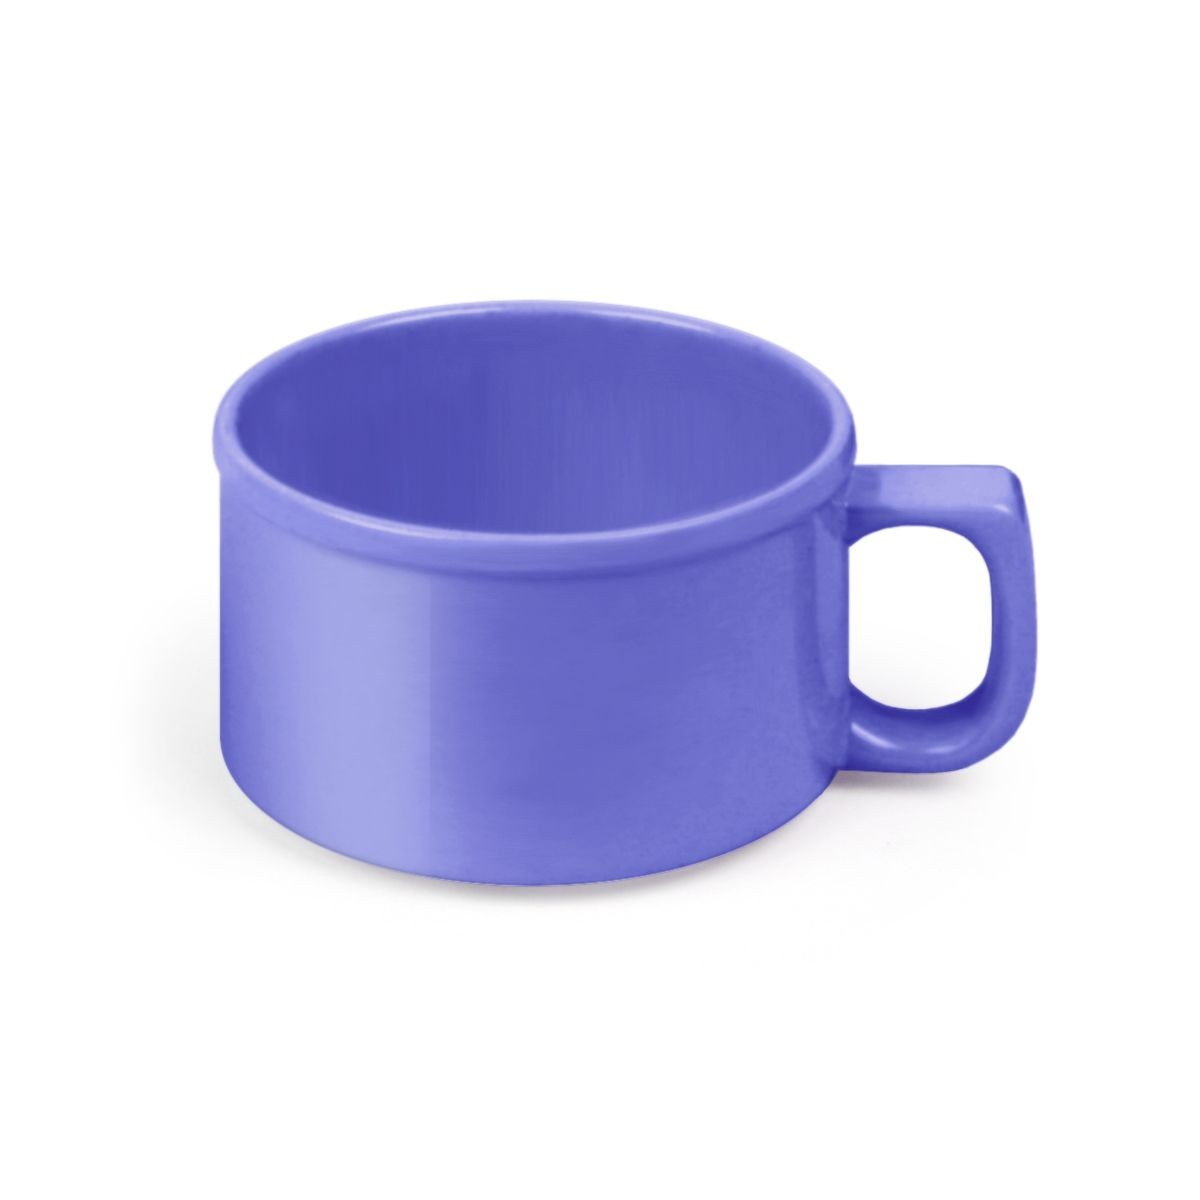 Thunder Group CR9016BU Purple Soup Mug 10 oz. - 1 doz